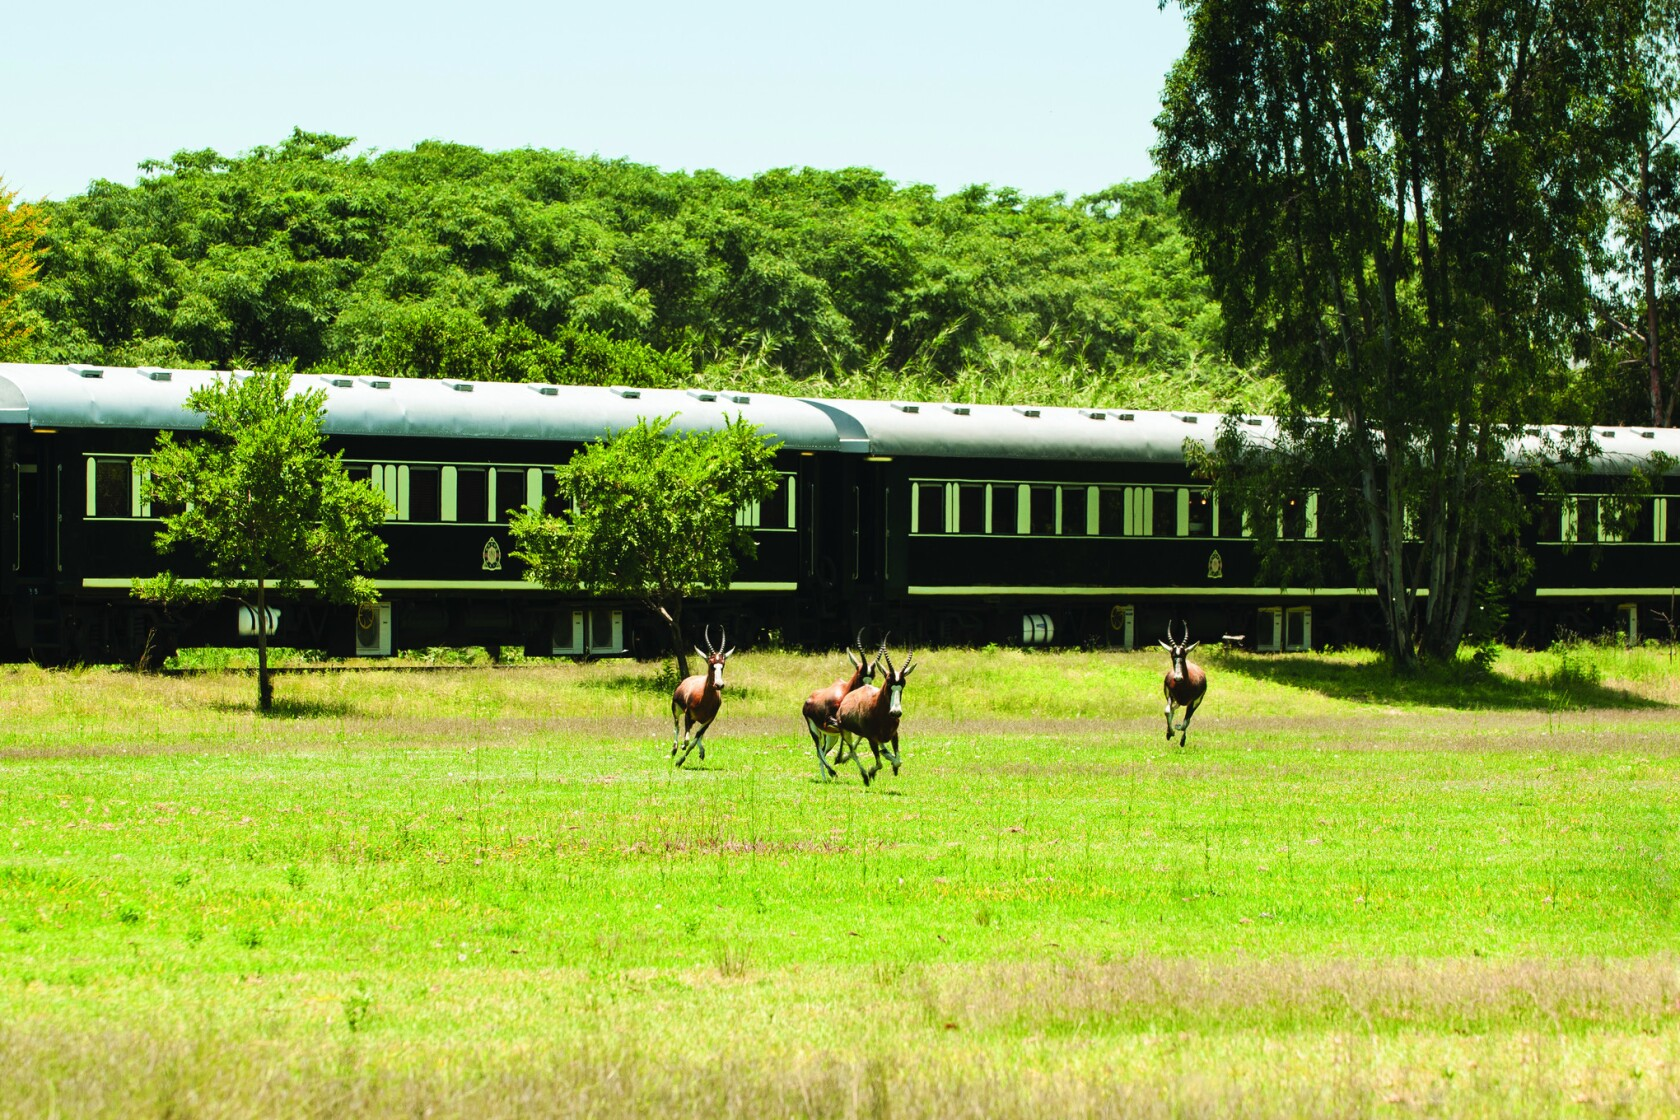 Touring South Africa in the lap of luxury aboard Rovos Rail's restored train